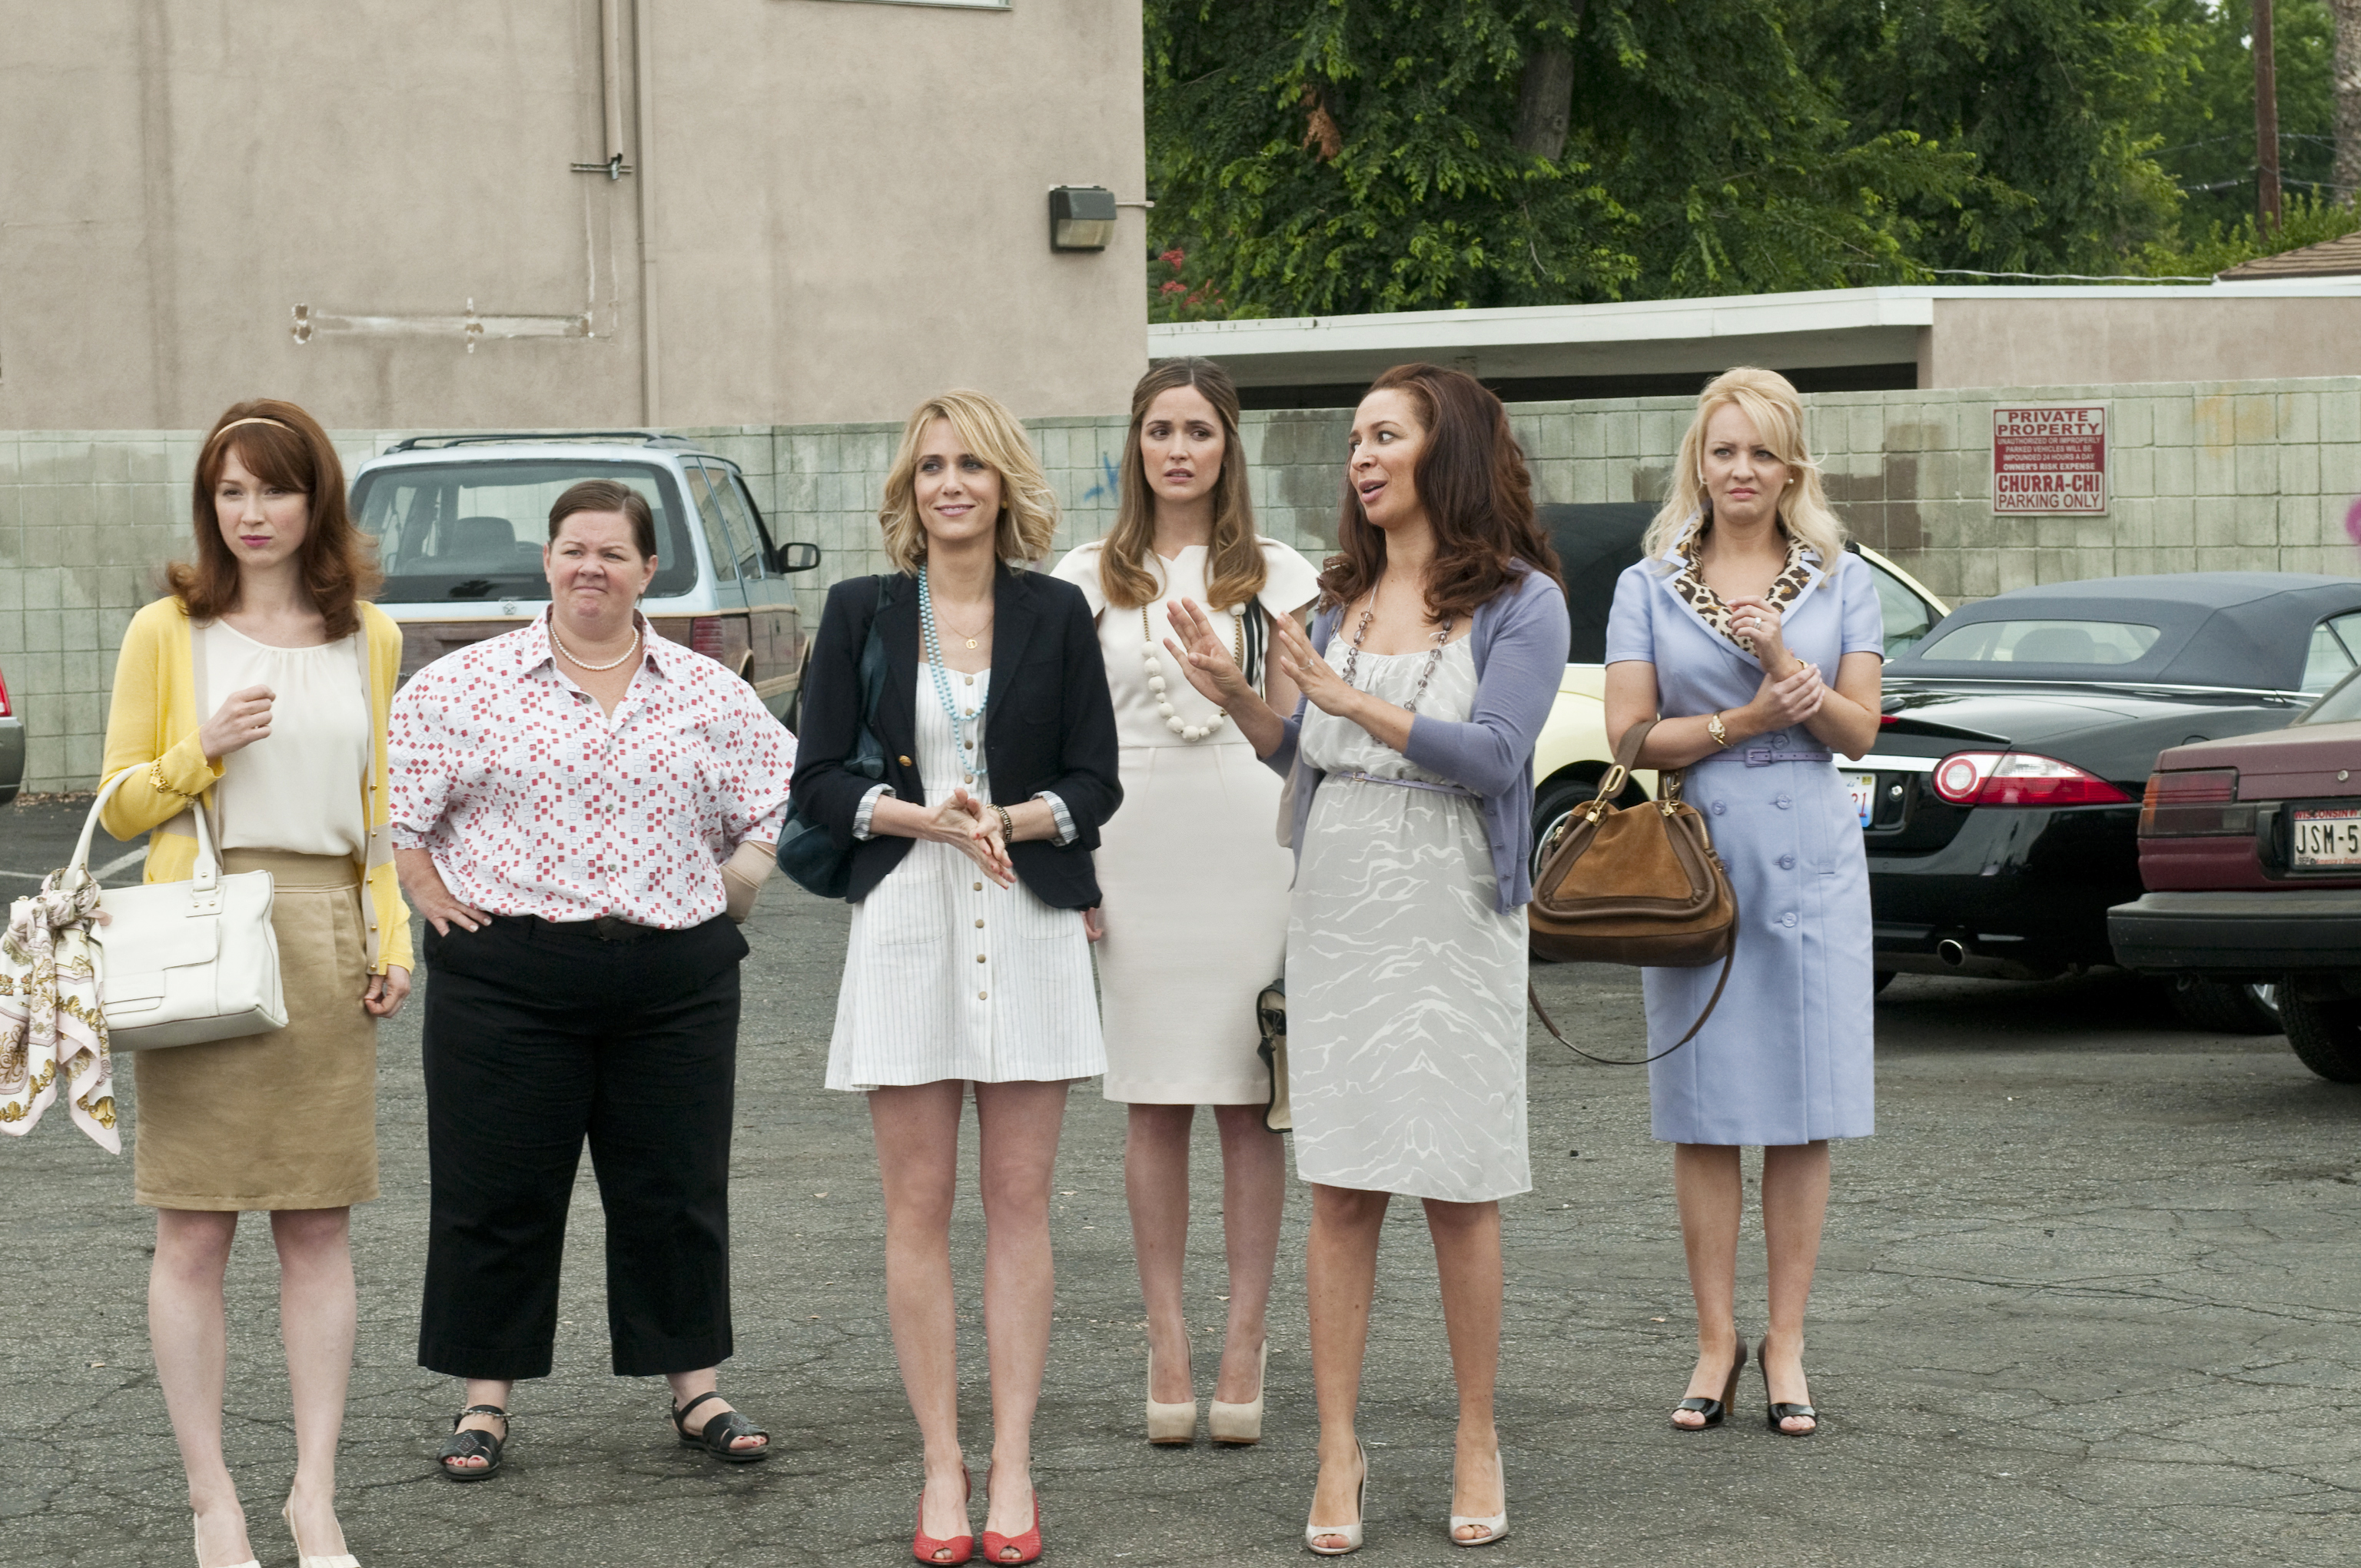 bridesmaids-sequel-paul-feig-kristen-wiig.jpg